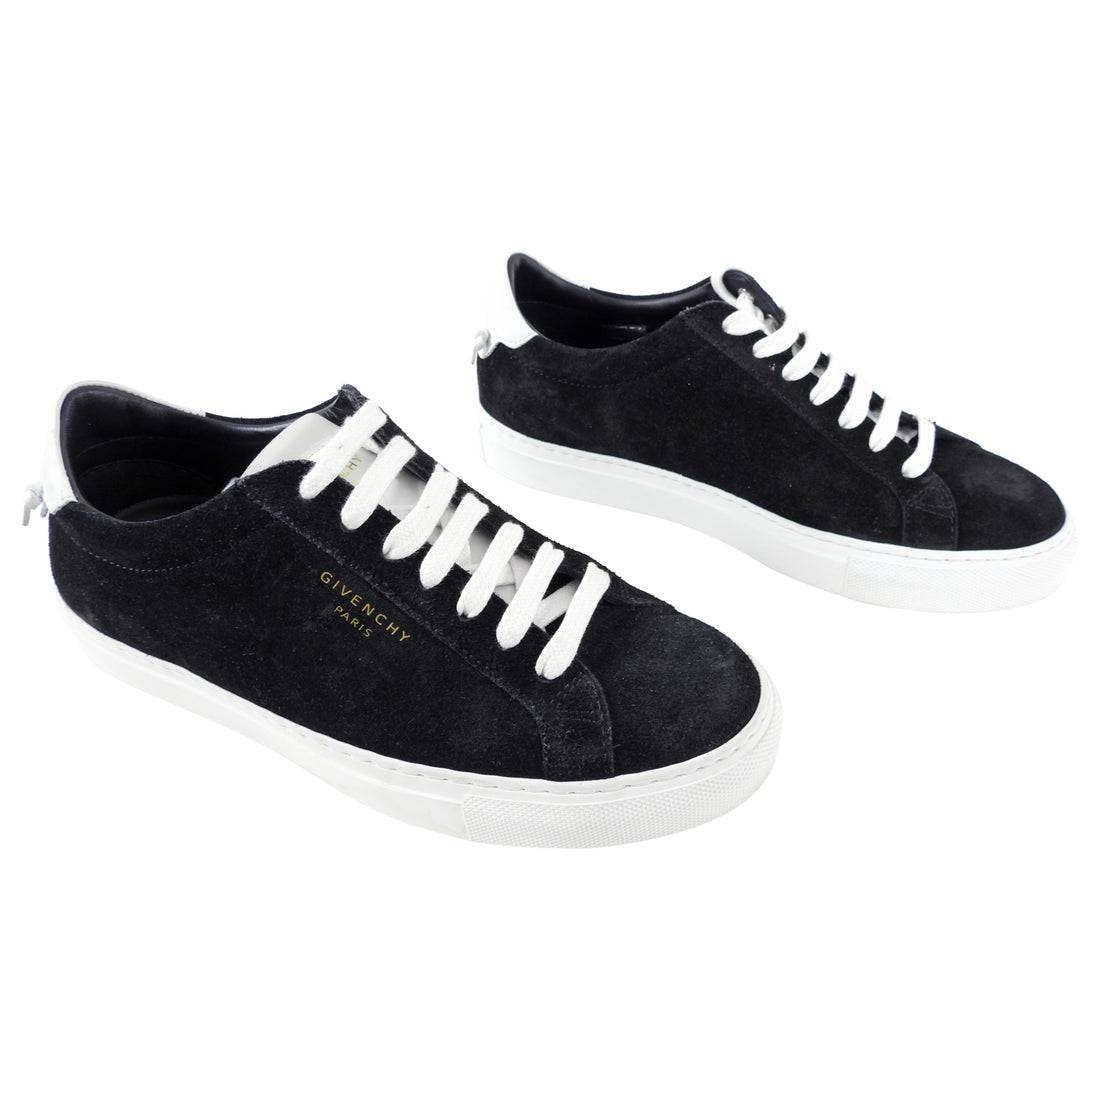 Givenchy Black Suede Urban Street Sneakers - 36